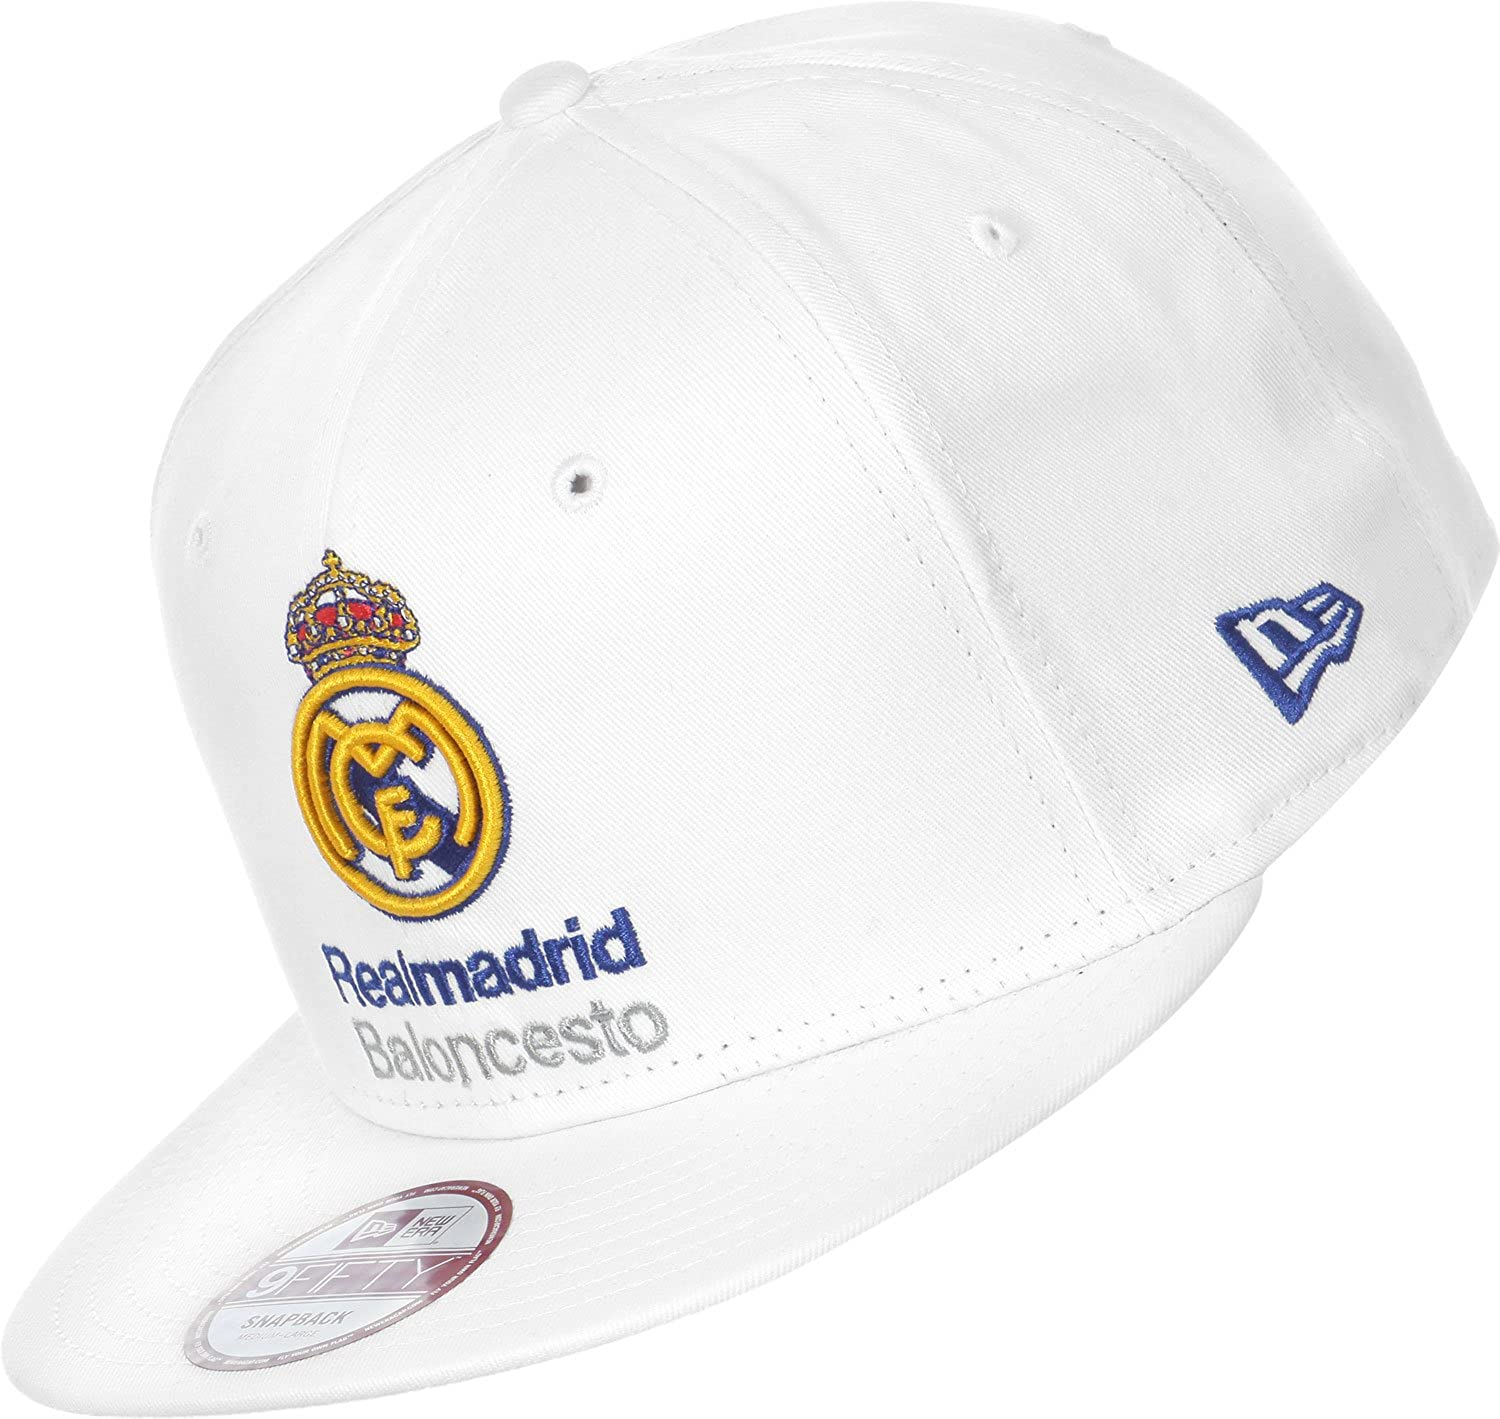 Gorra del Real Madrid New Era. 9Fifty: Amazon.es: Ropa y accesorios